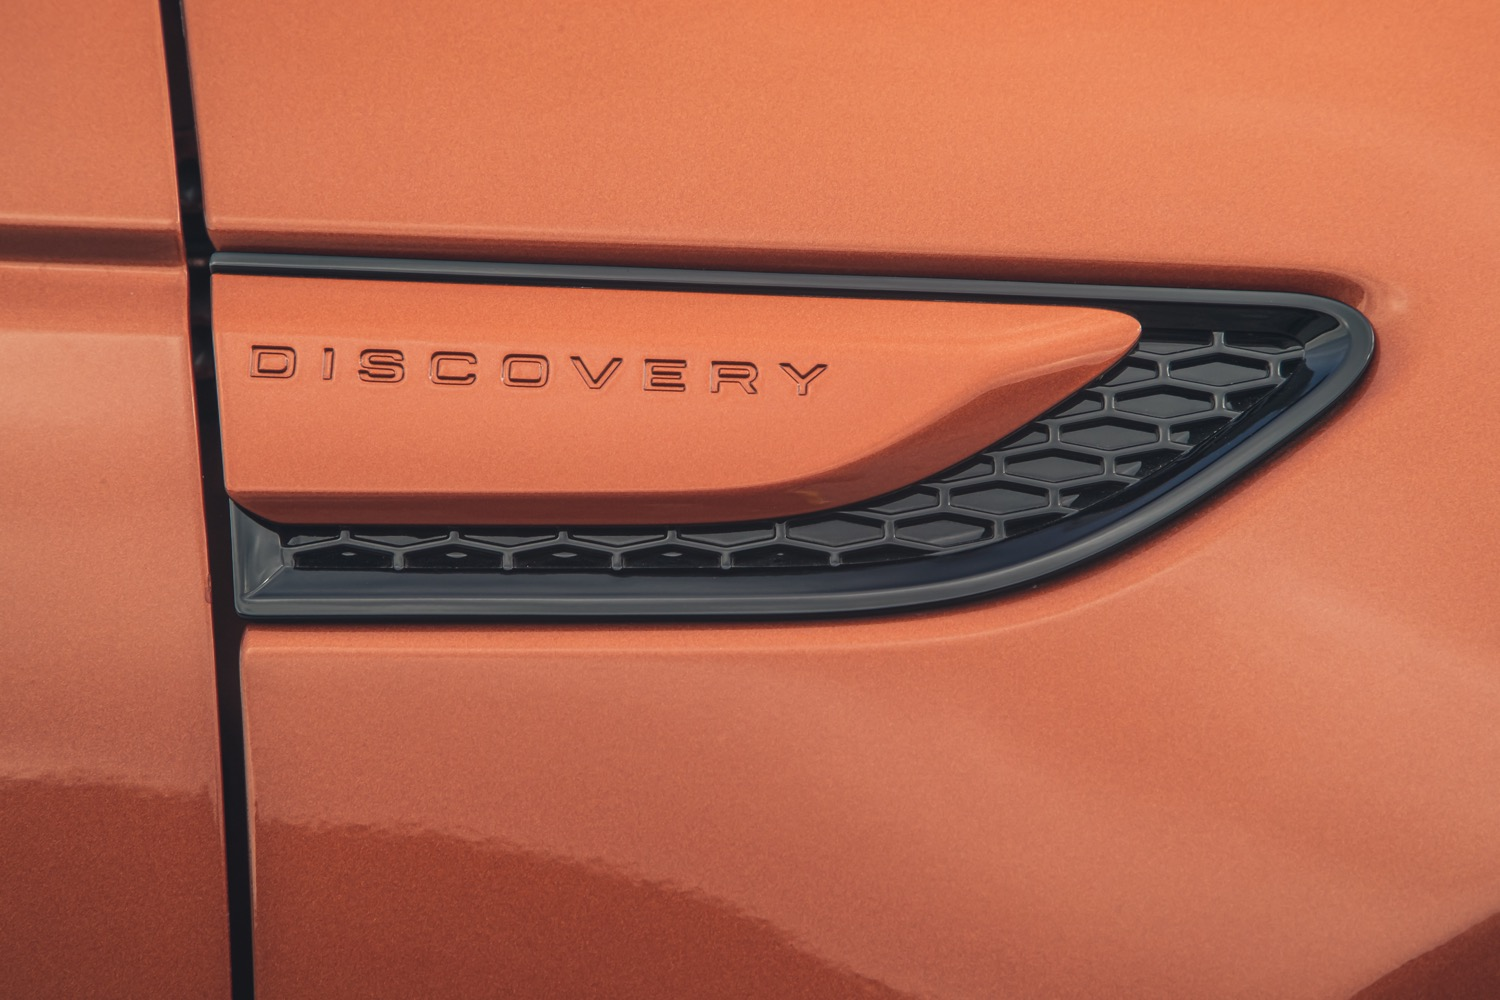 2020_land_rover_discovery_sport_facelift_13